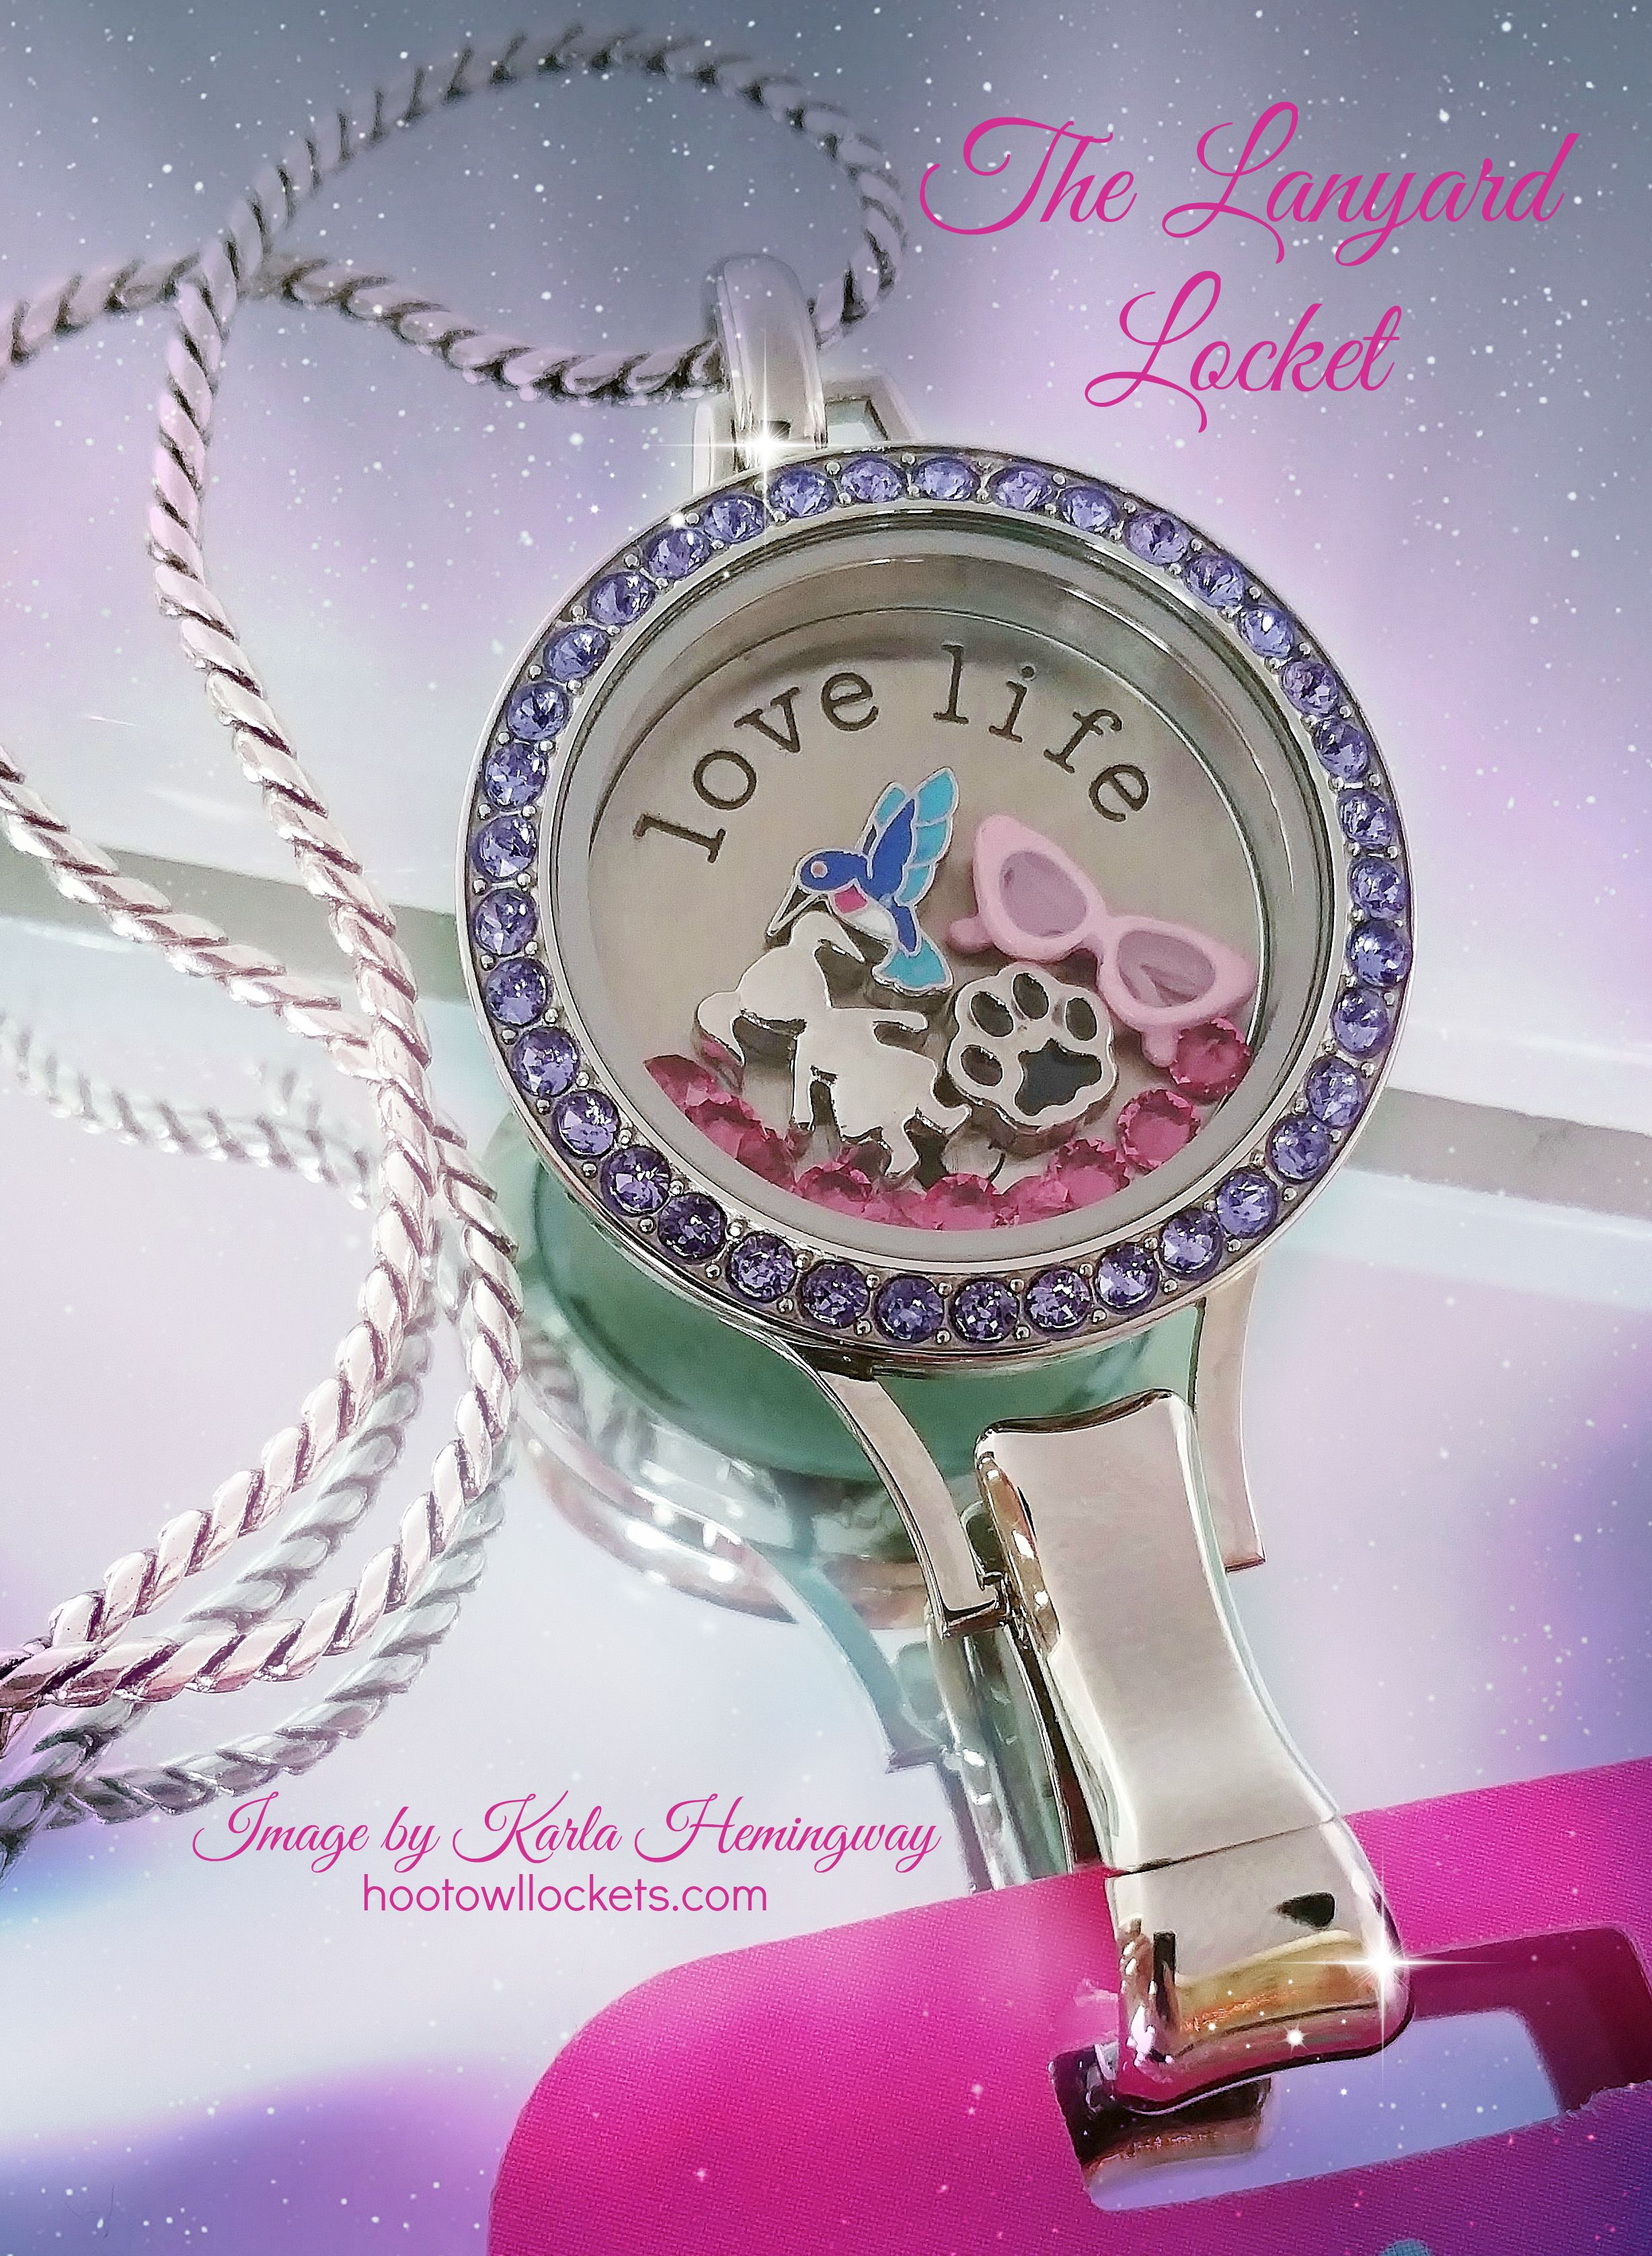 Origami Owl Lanyard Locket with the new Tanzanite Twist ... - photo#11